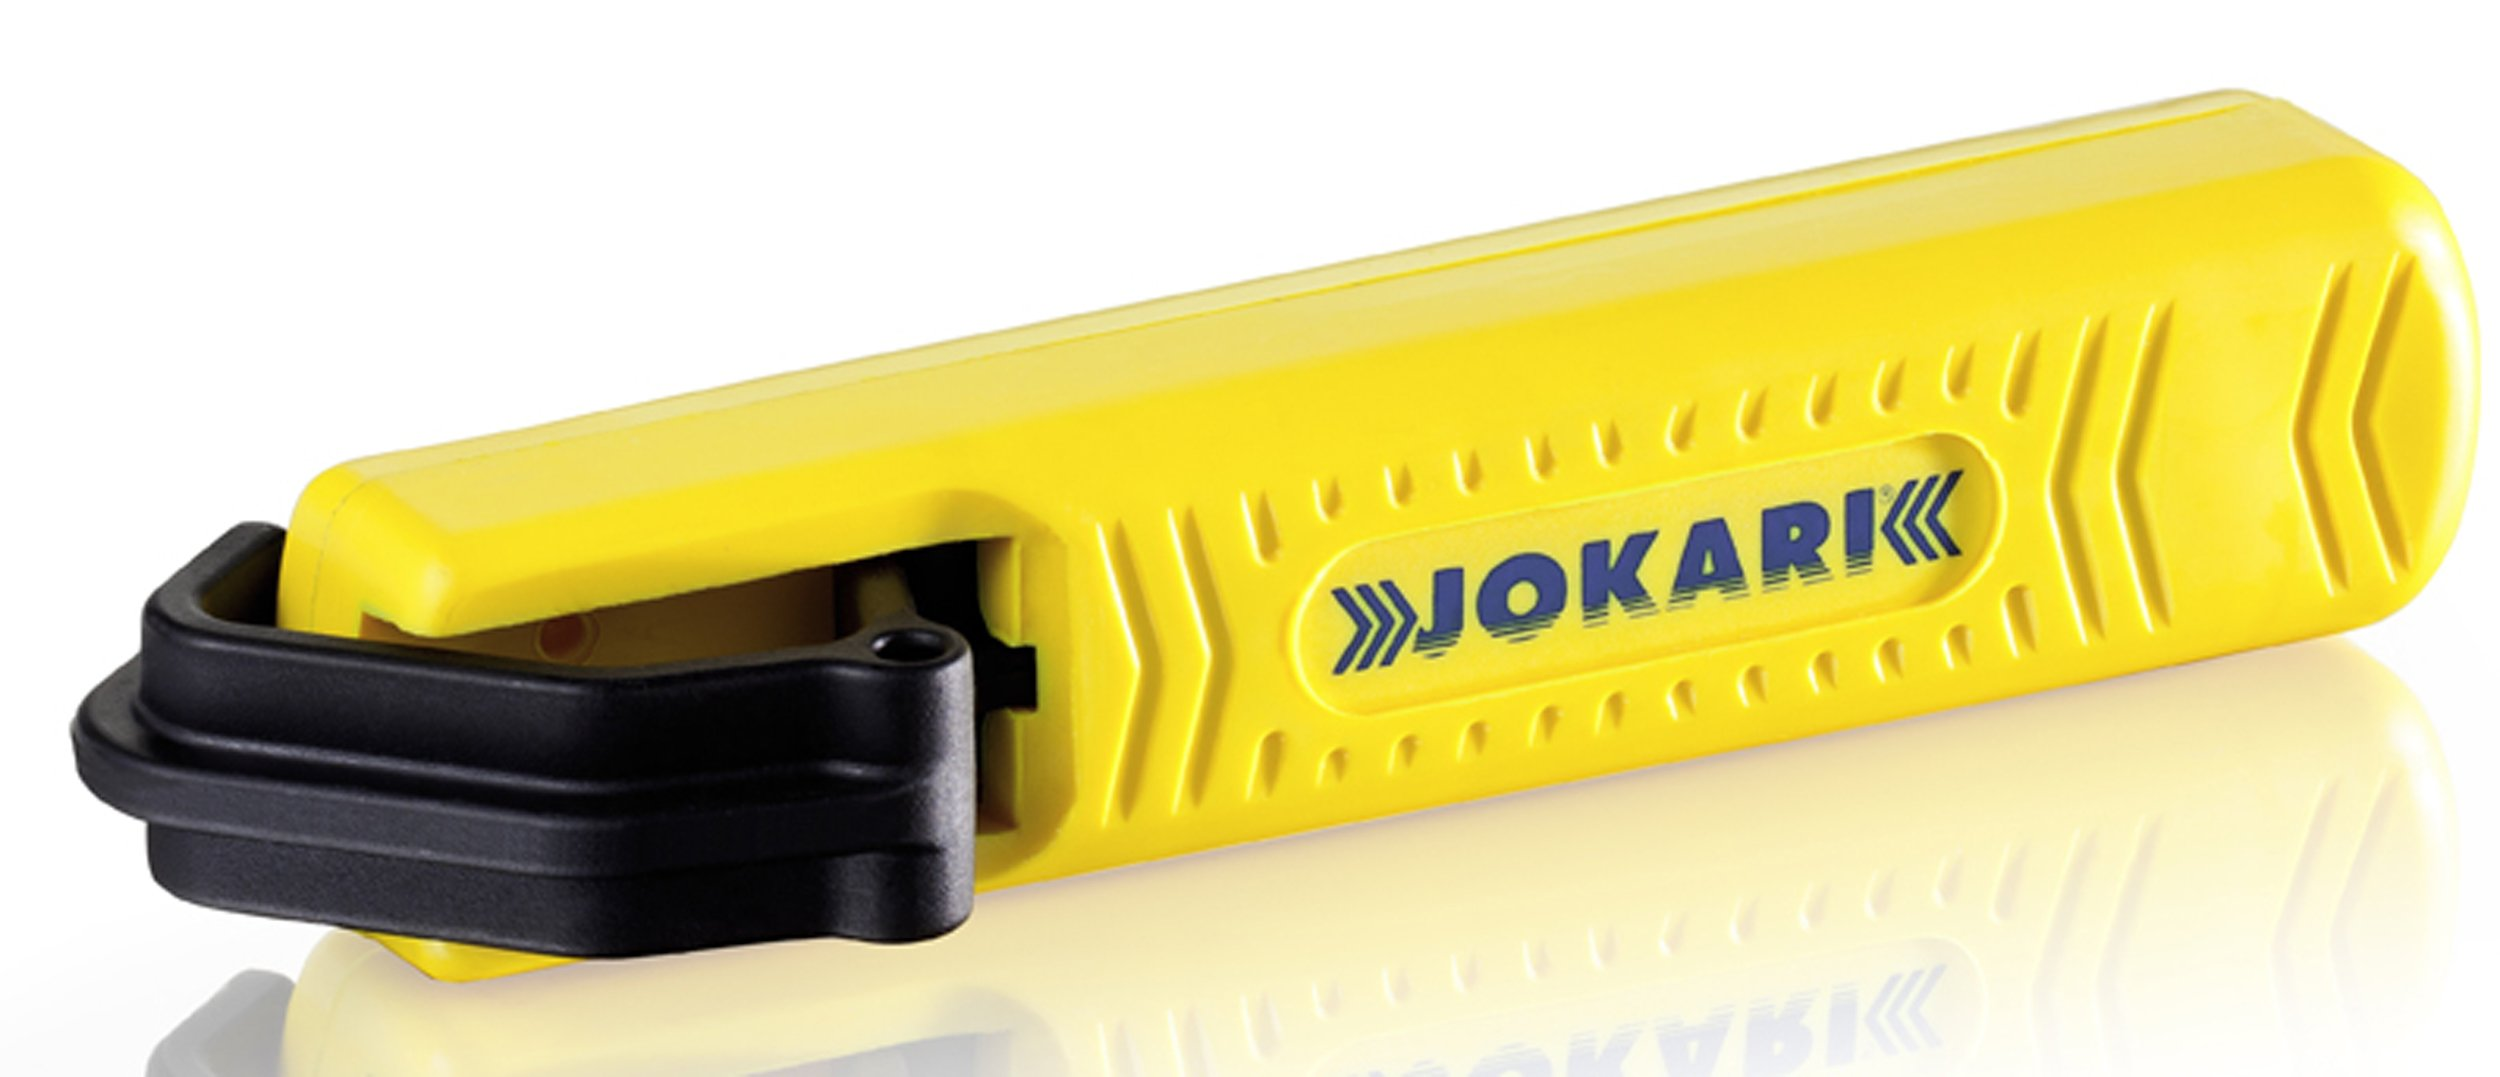 Jokari 10271 Completely Insulated Cable Stripping Knife for All Standard Round Cables, No. 27 ISO, 13.8cm L x 3.8cm W x 3.5cm H